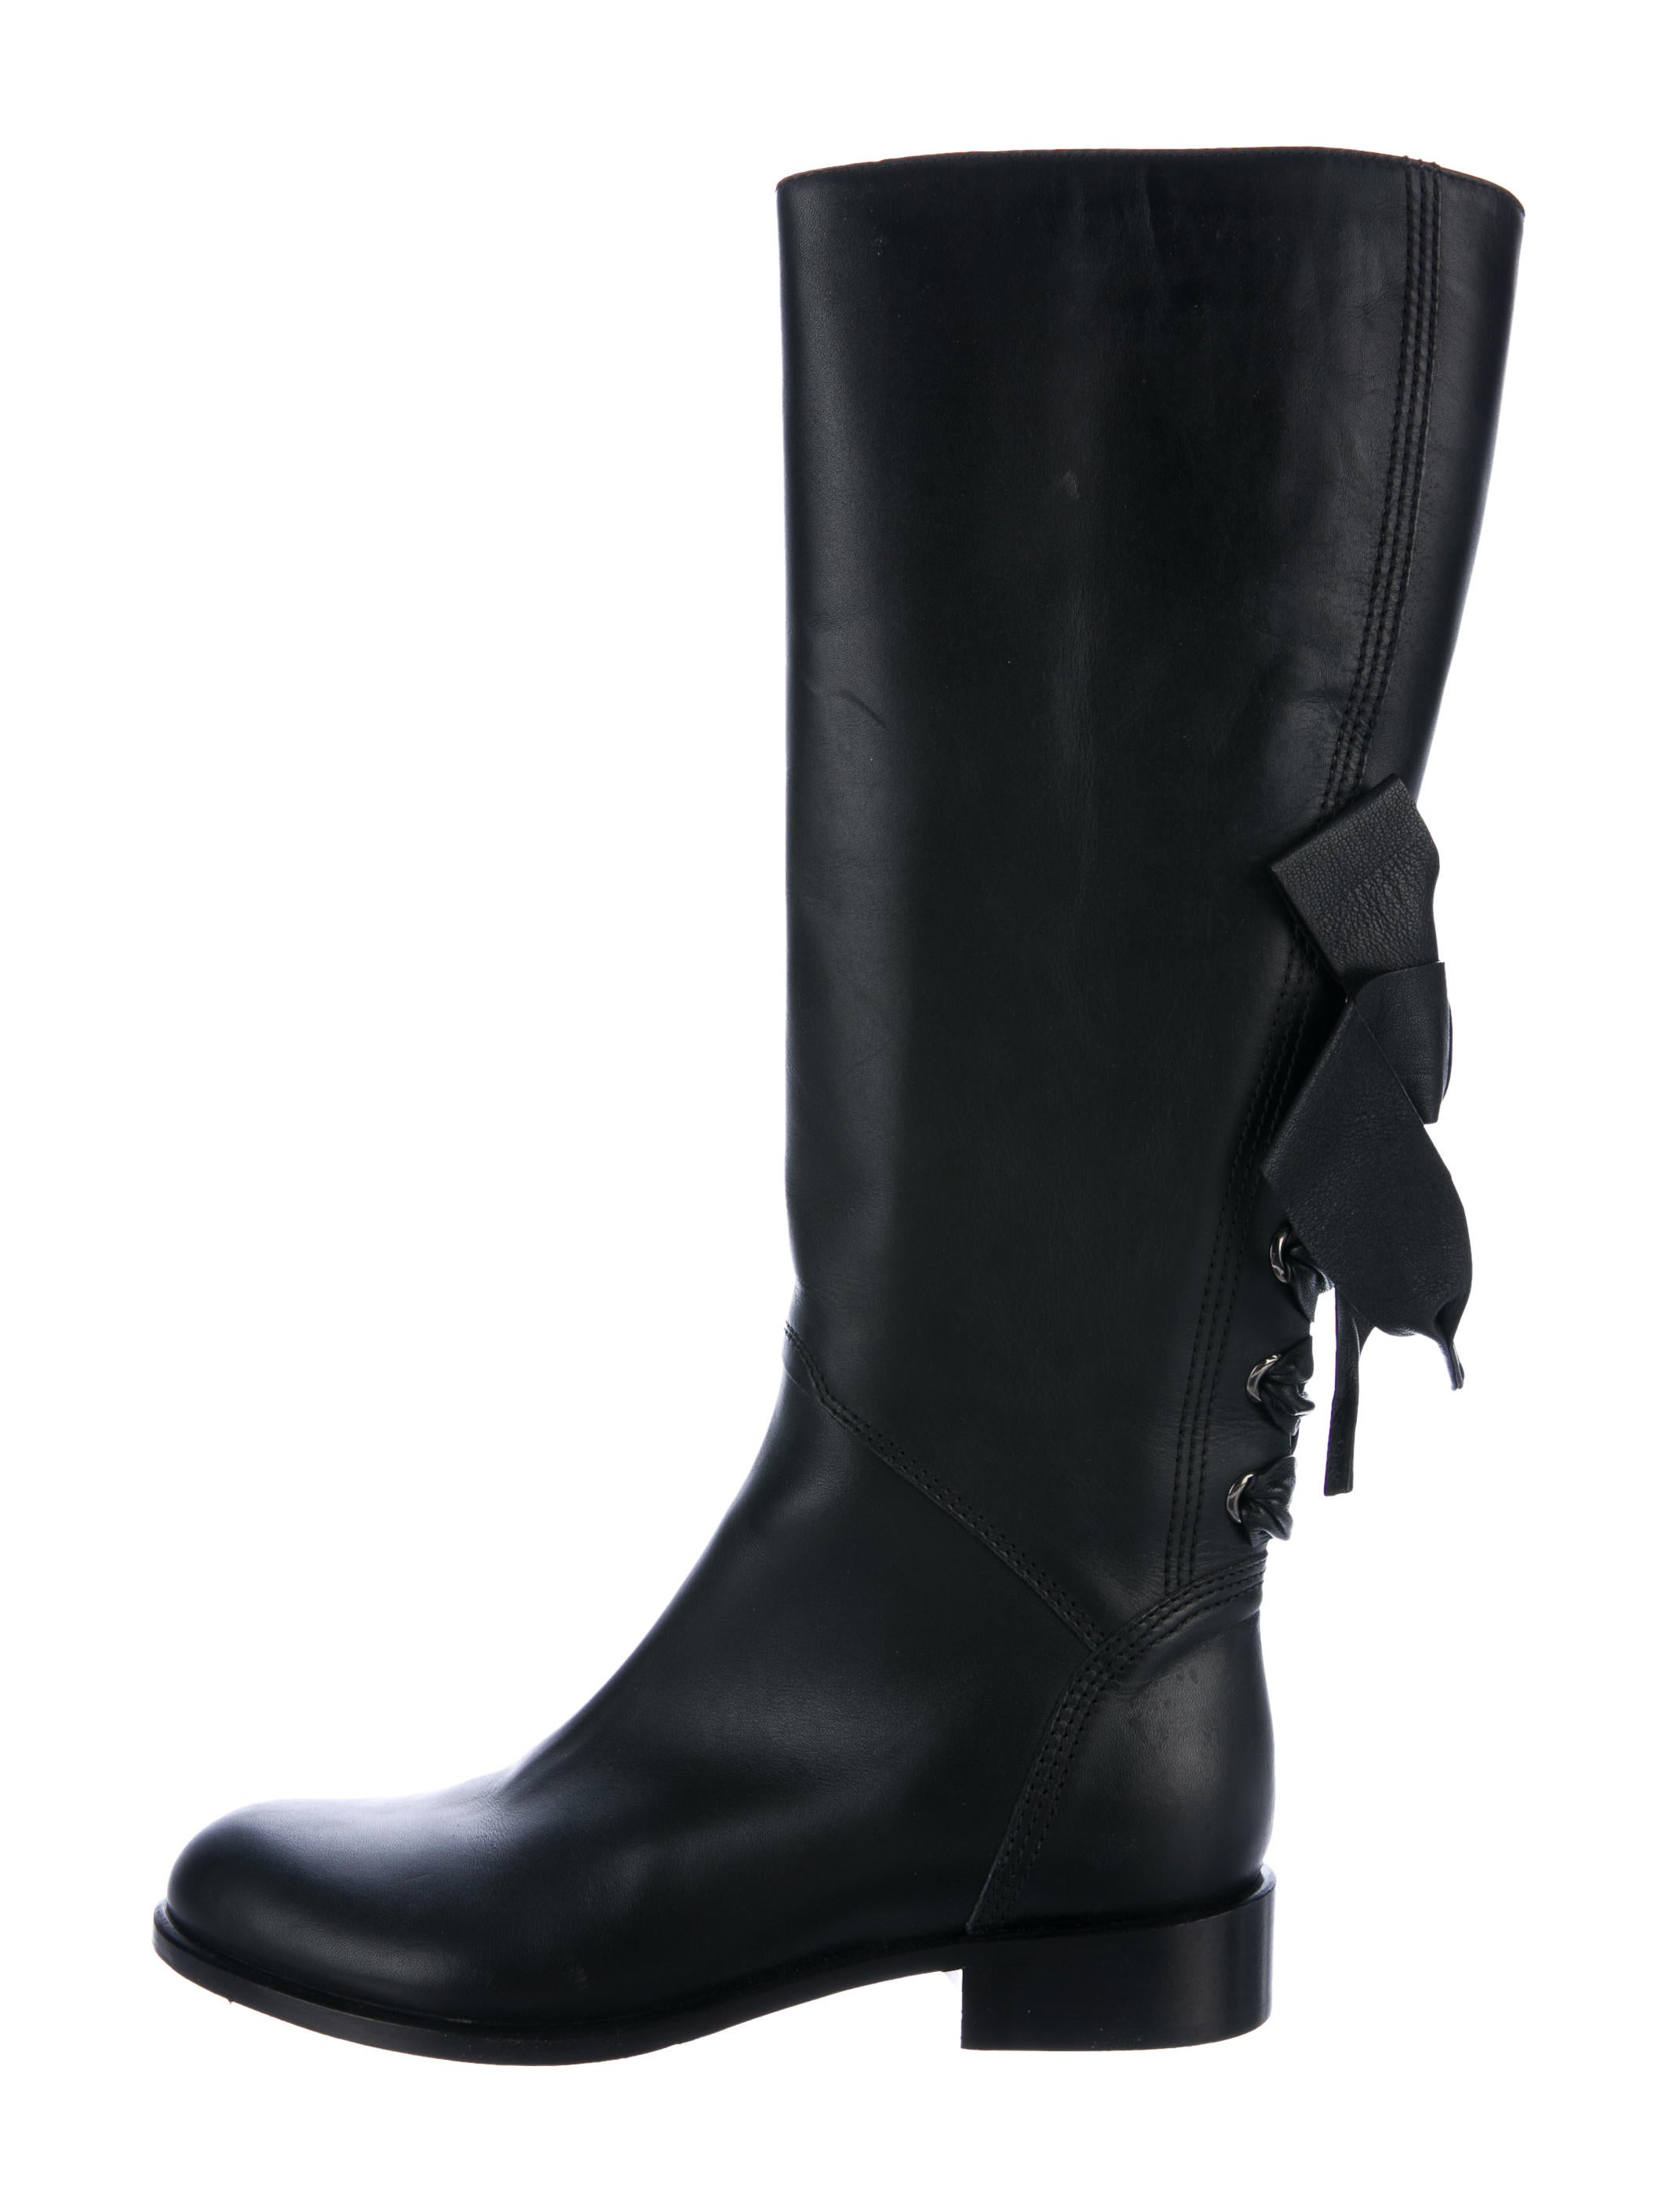 valentino bow accented knee high boots shoes val69235